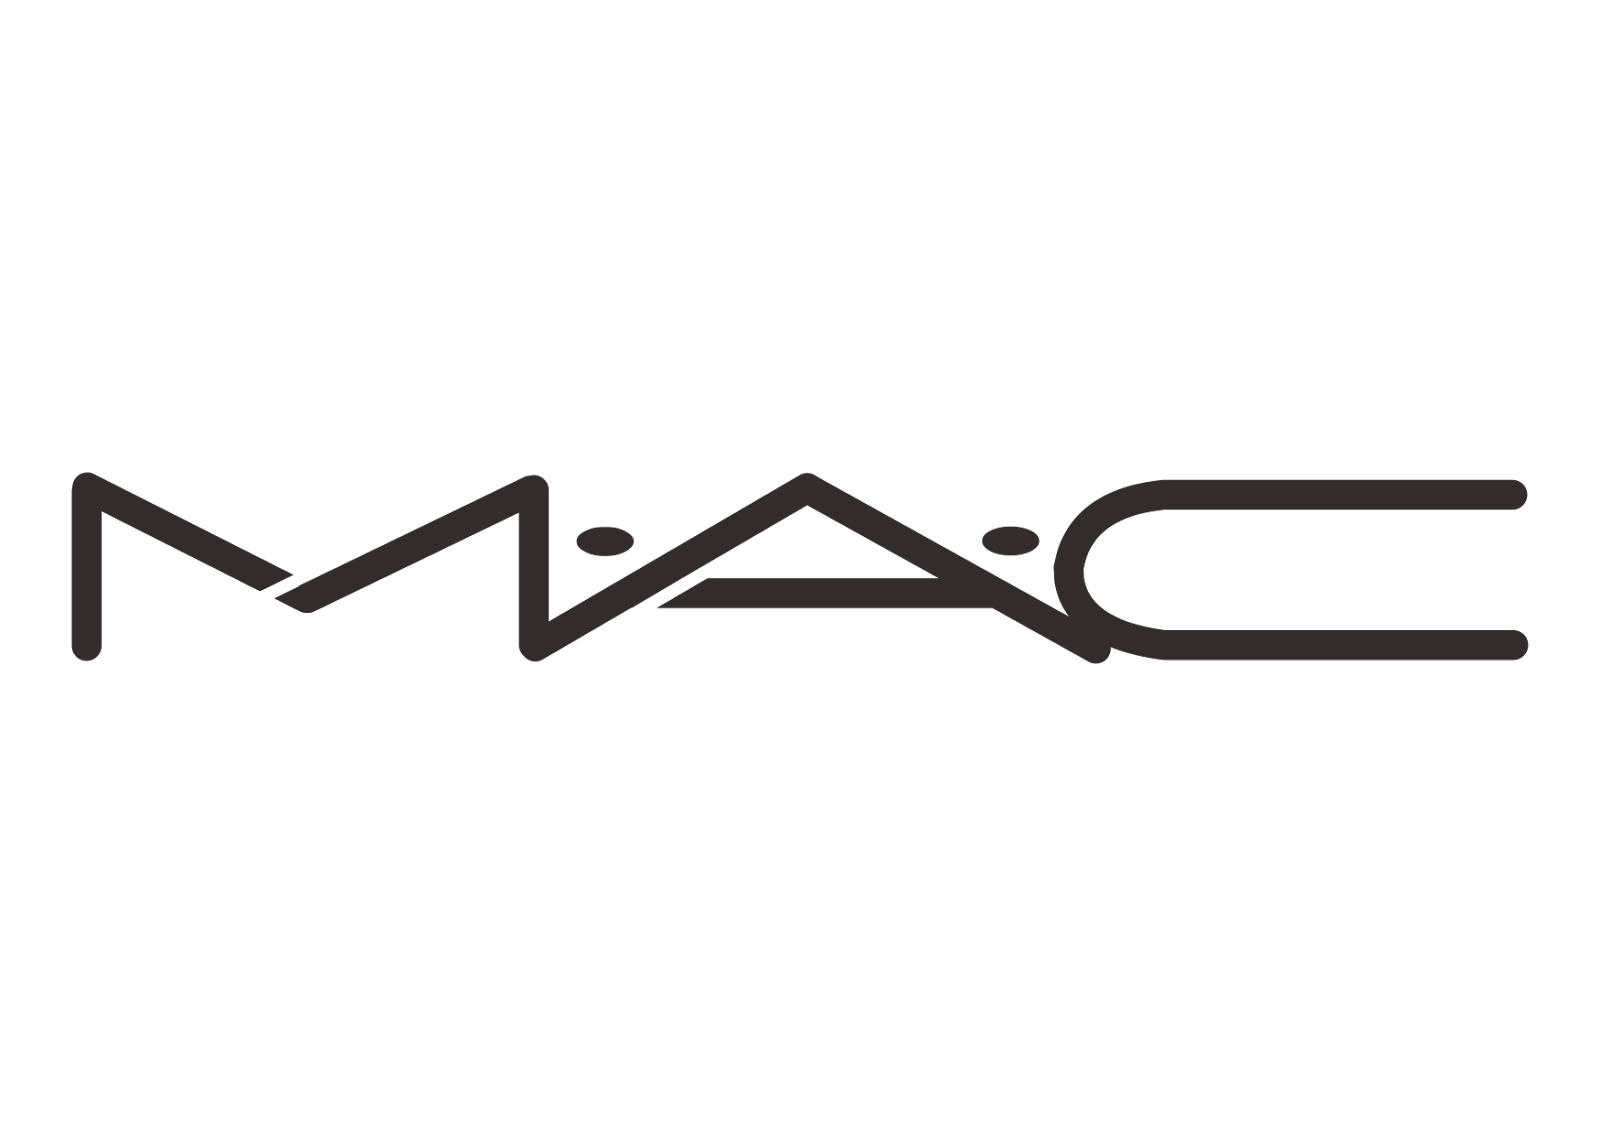 Mac Cosmetics Logo Vector Format Cdr Ai Eps Svg Pdf Png: free vector program mac